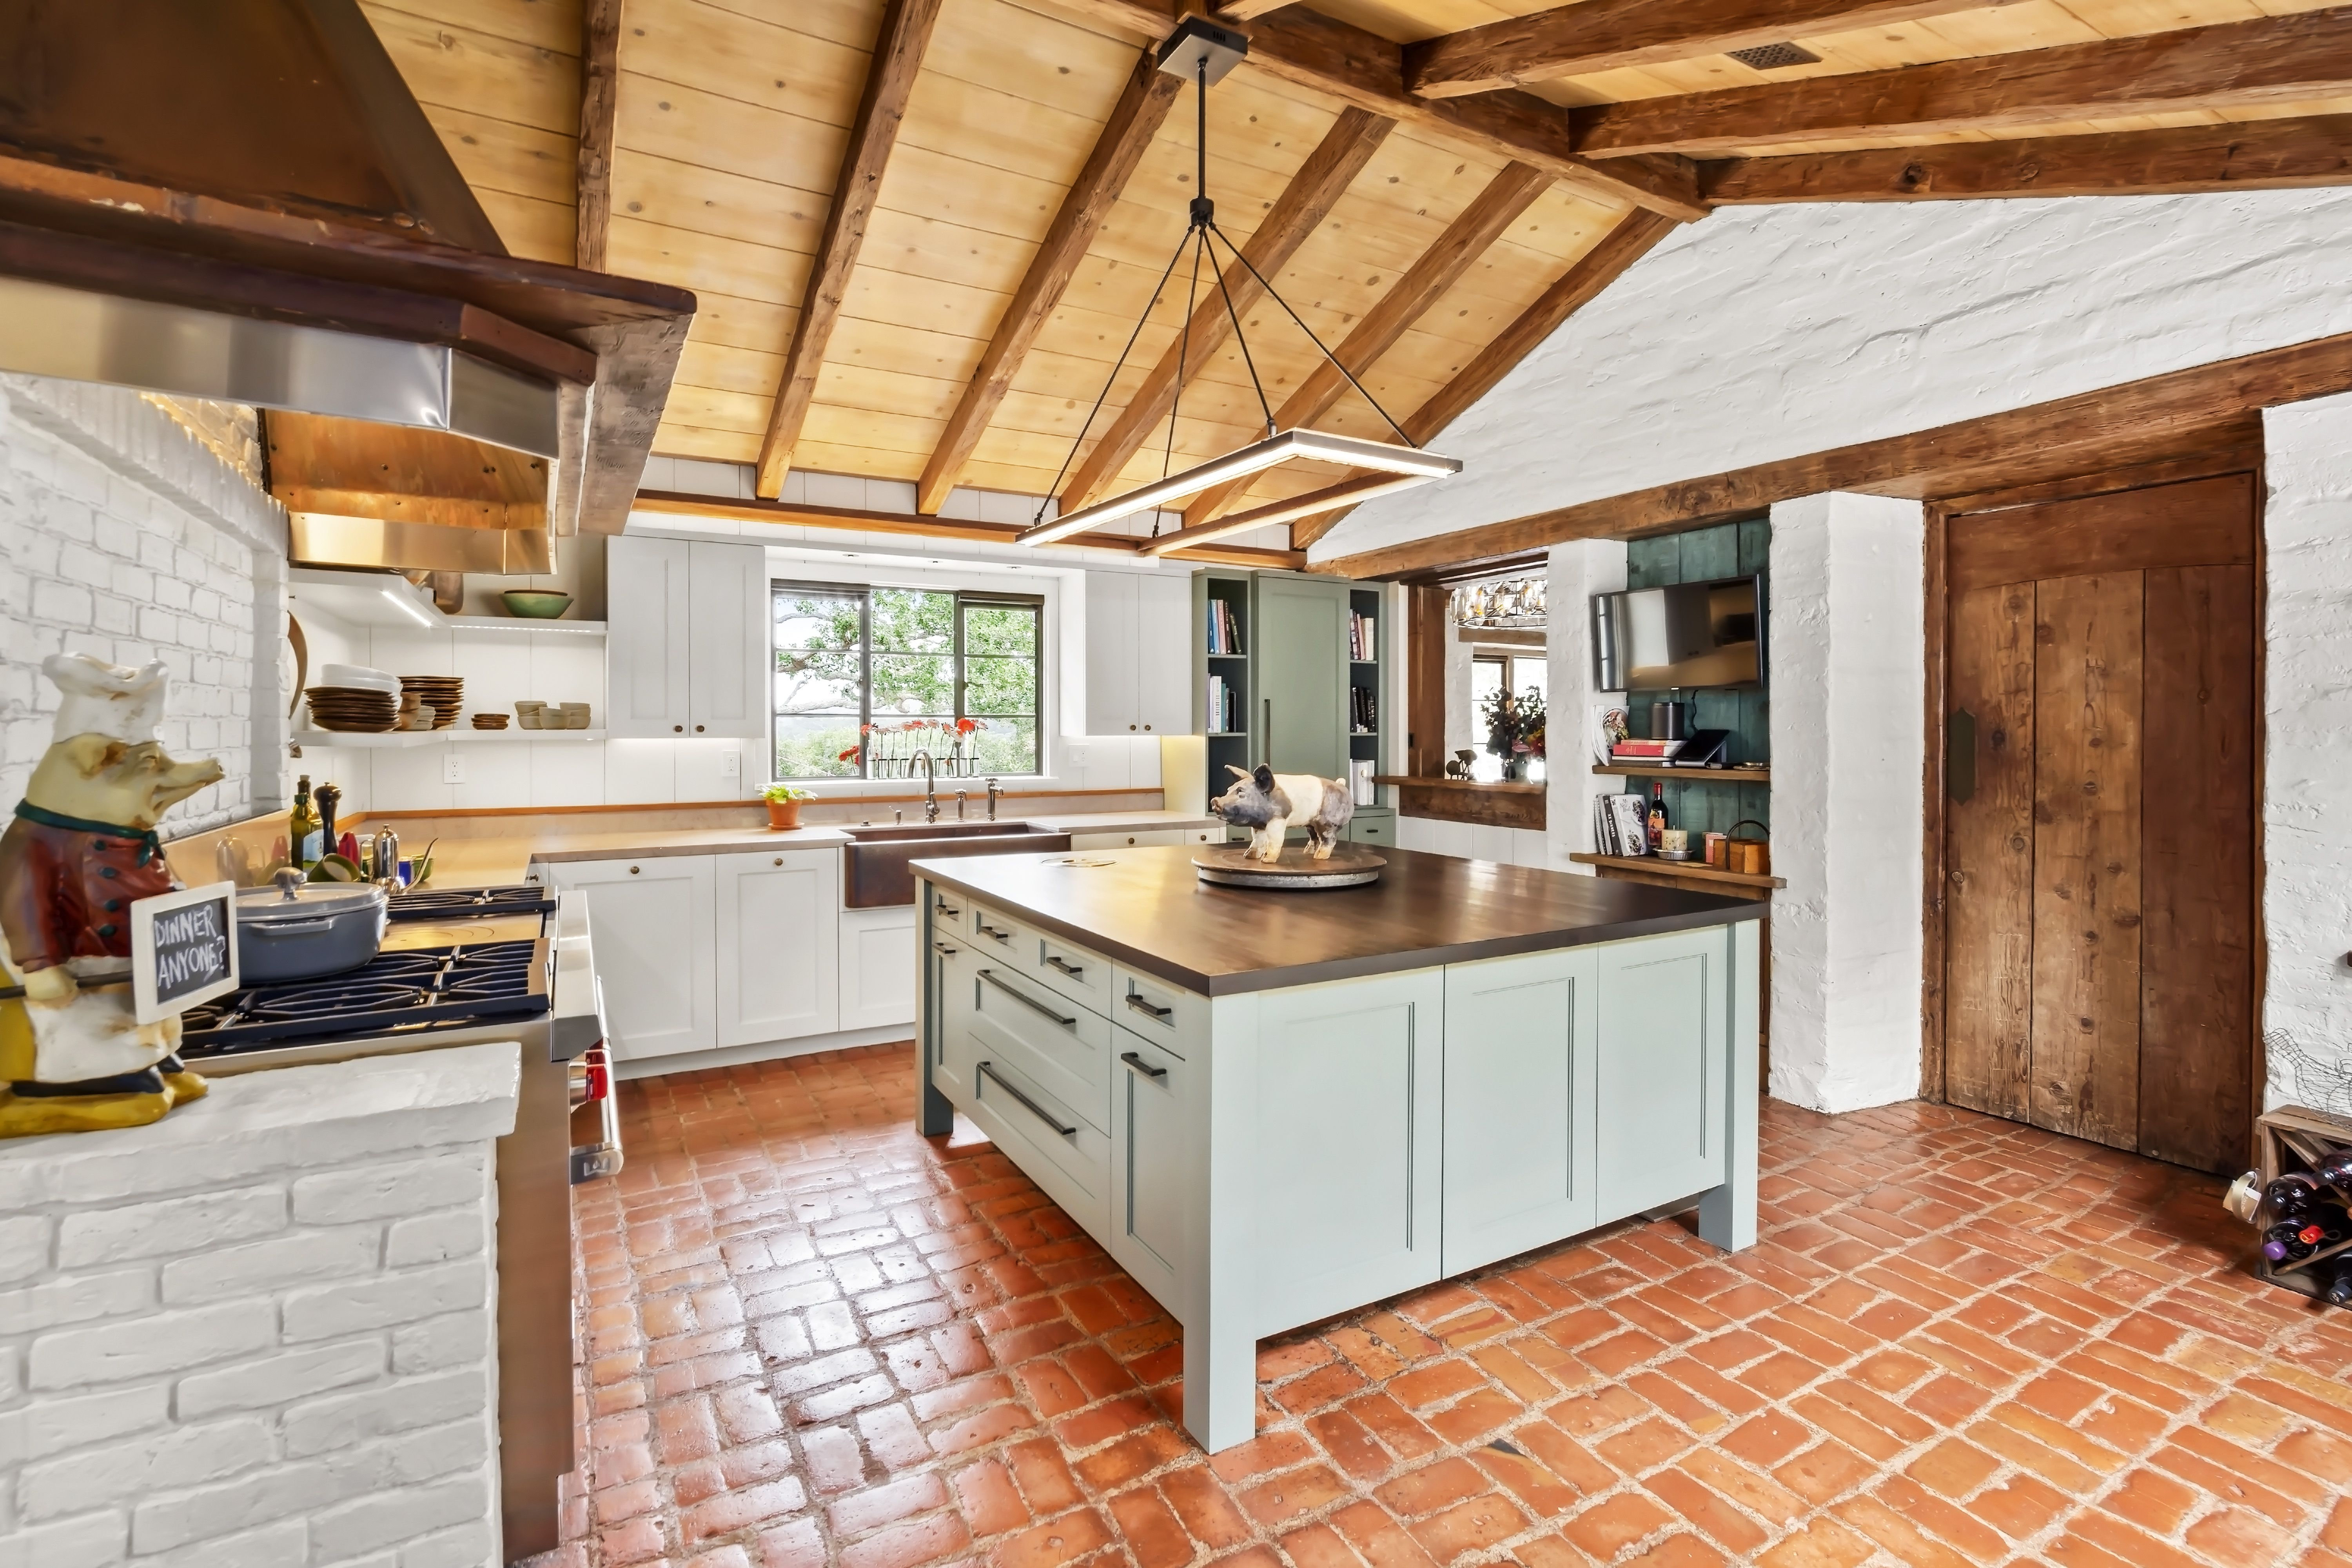 Comstock Adobe Kitchen By Studio Draper Dbs Custom Cabinetry With Spevka Wood Top On The Island